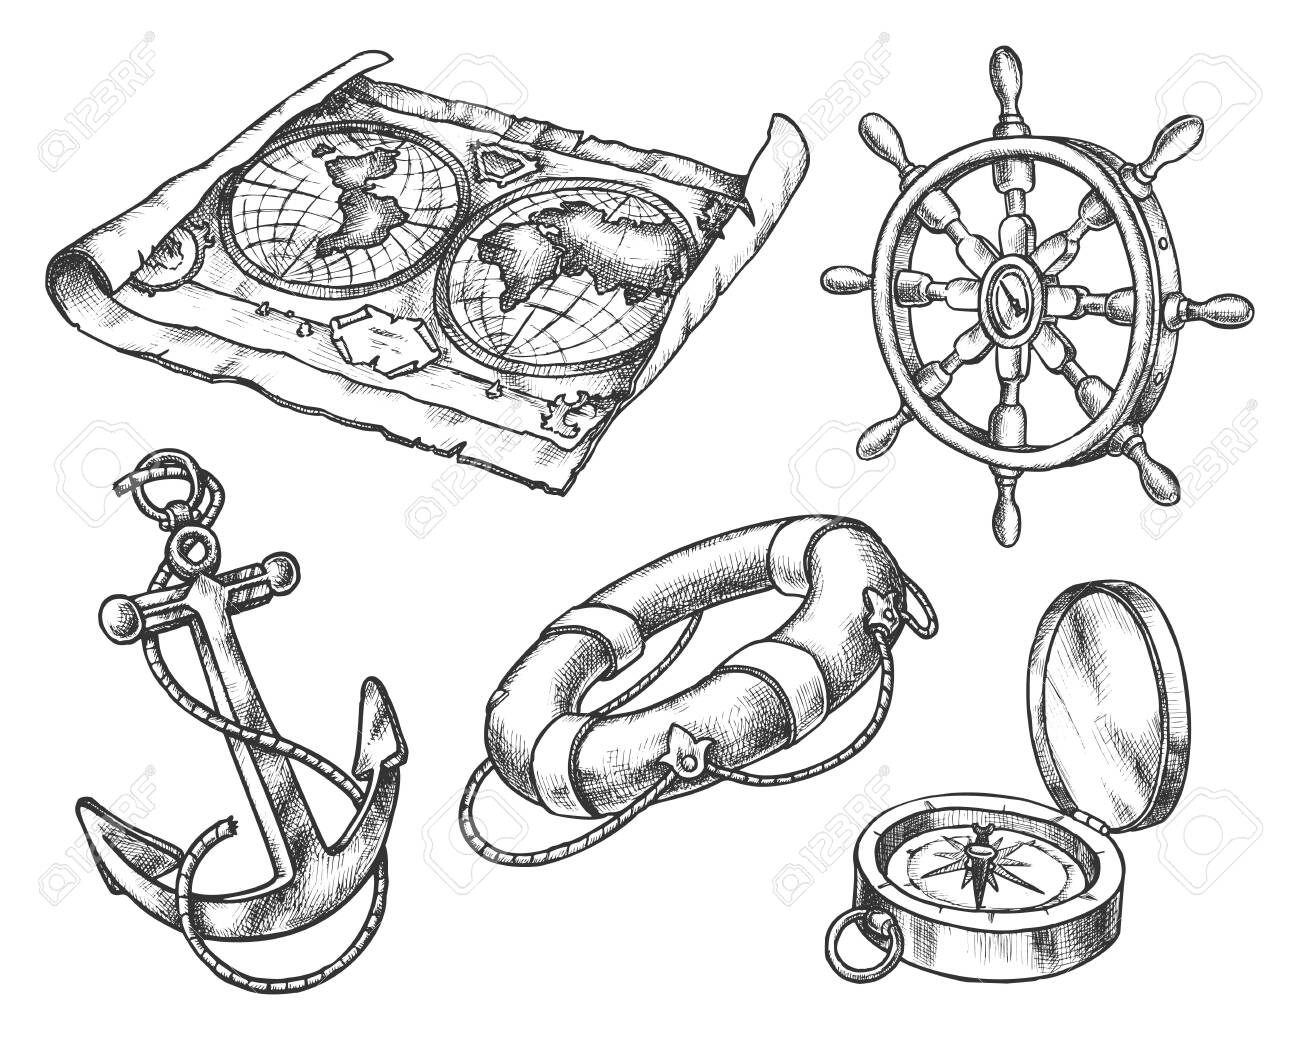 Set Of Isolated Sketch Of Sea Equipment Ocean Compass And Vintage Royalty Free Cliparts Vectors And Stock Illustration Image 135340138